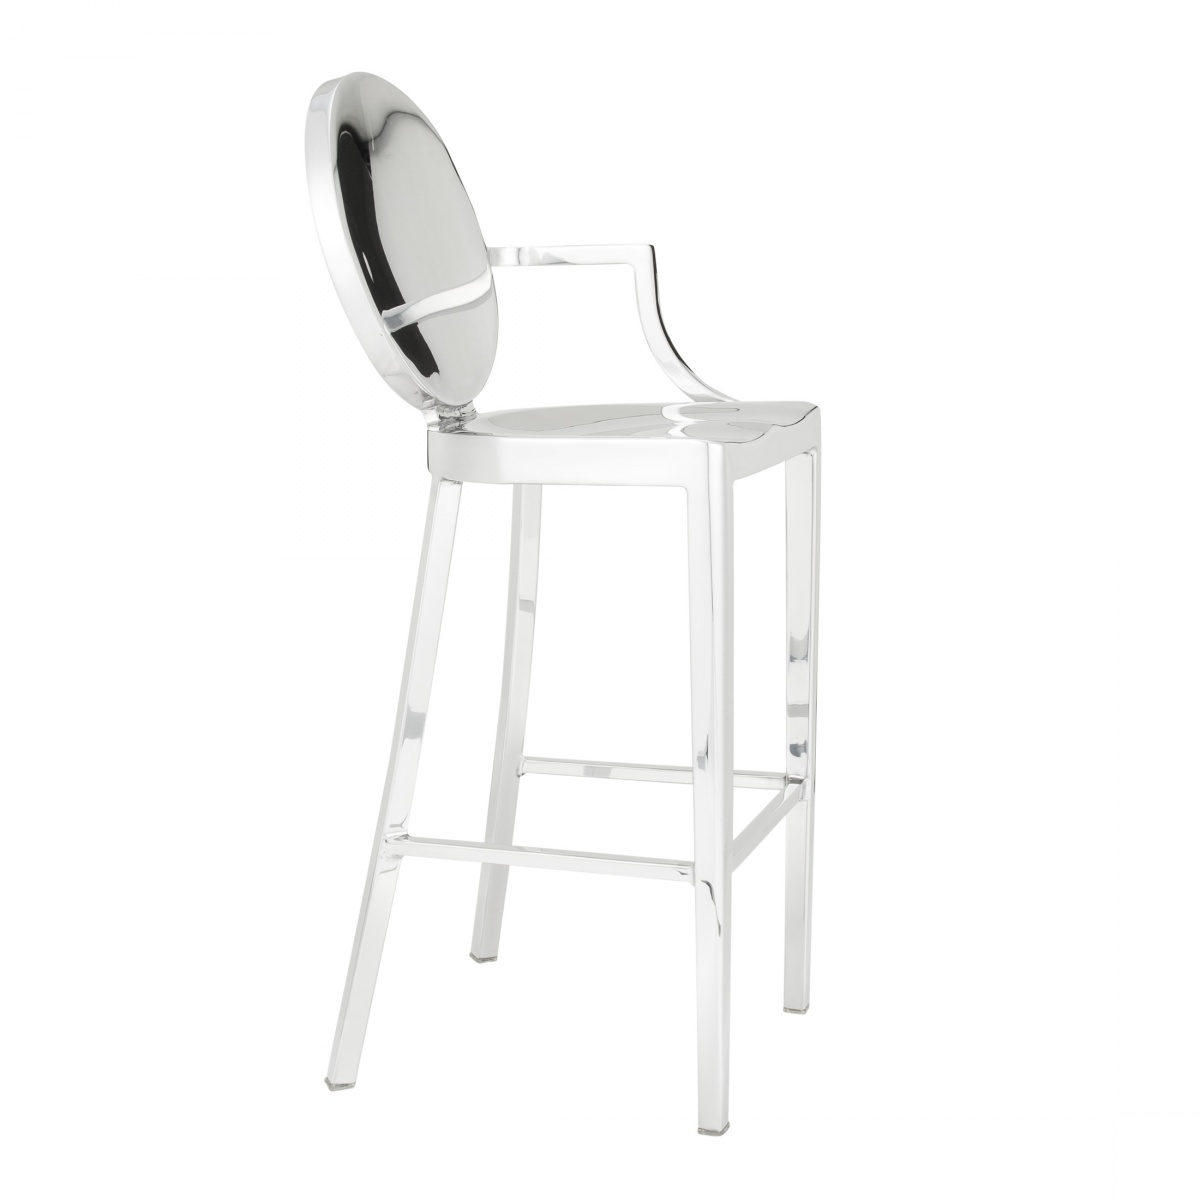 Emeco Kong Barstool With Arms Philippe Starck Owo